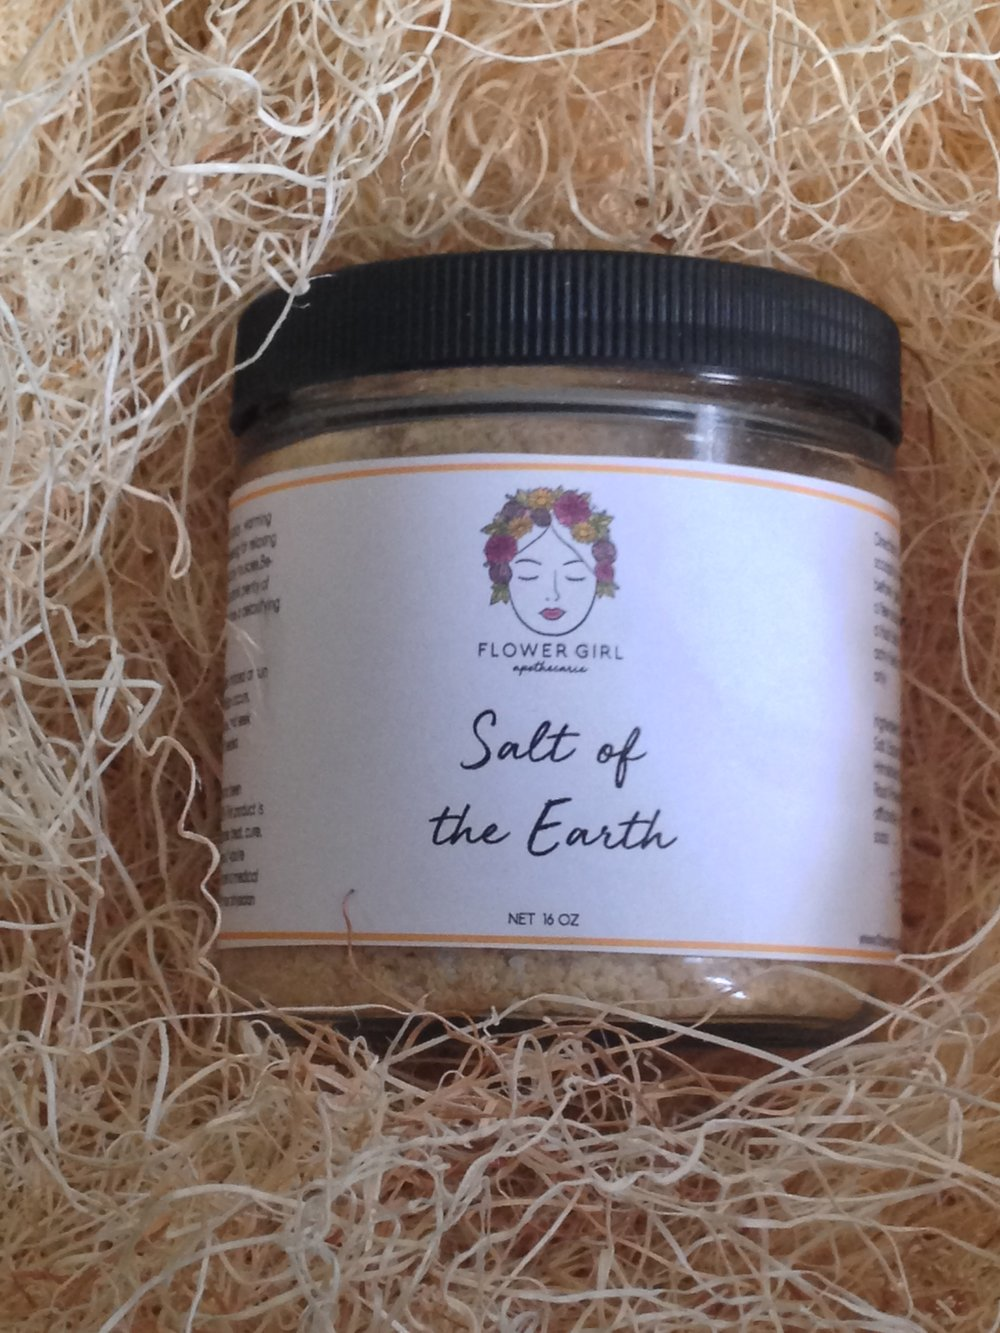 - This soak can be perfect for soaking tired muscles or achy feet . We like to use it as a foot soak around pms time , perfect for inflammation and bloating that happens around the time of the month for some women. Add a few flowers to the foot bath and make it festive!Click here  to purchase . We have this product available in 8 oz or  16 oz jar.